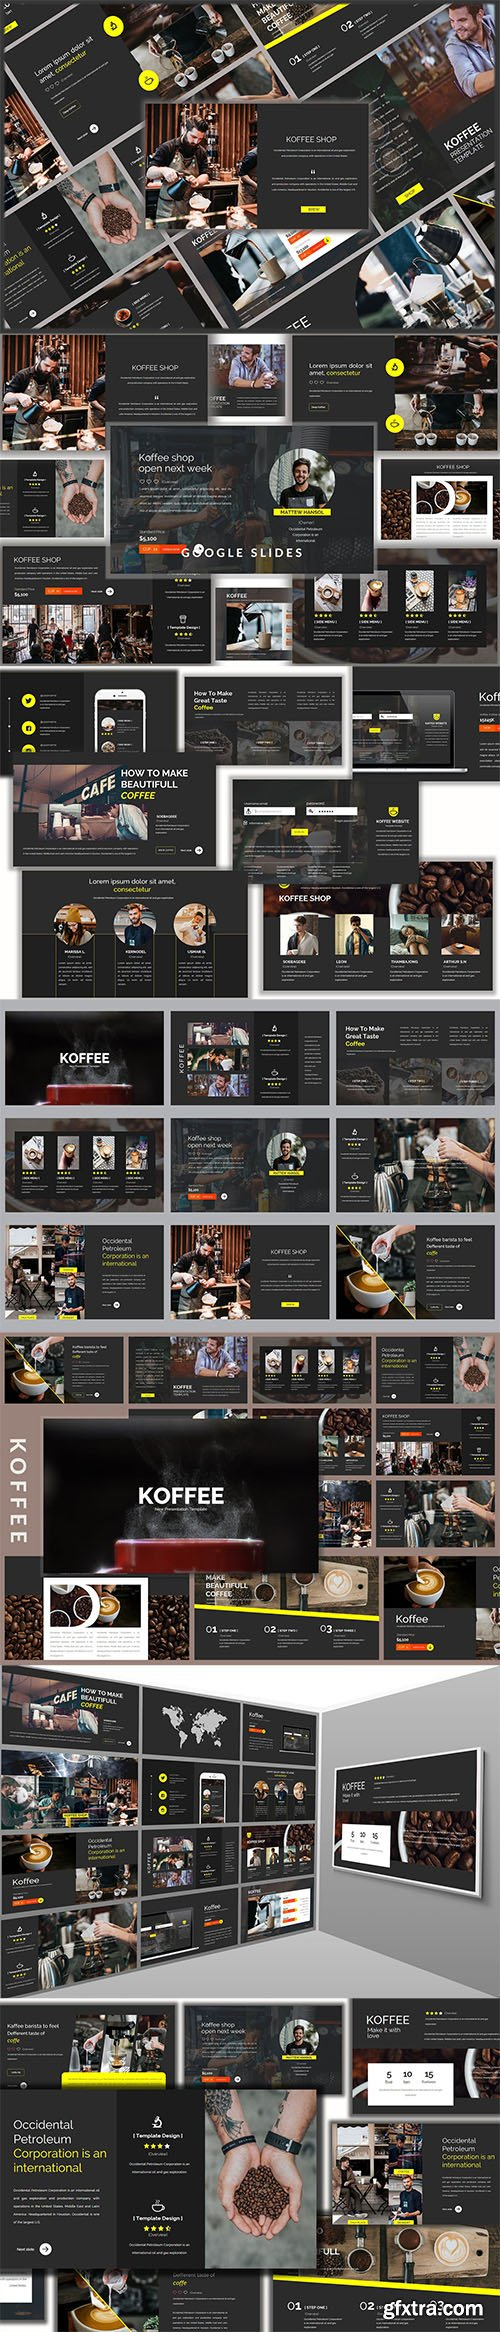 Koffee Corporate - Powerpoint, Keynote and Google Slides Templates